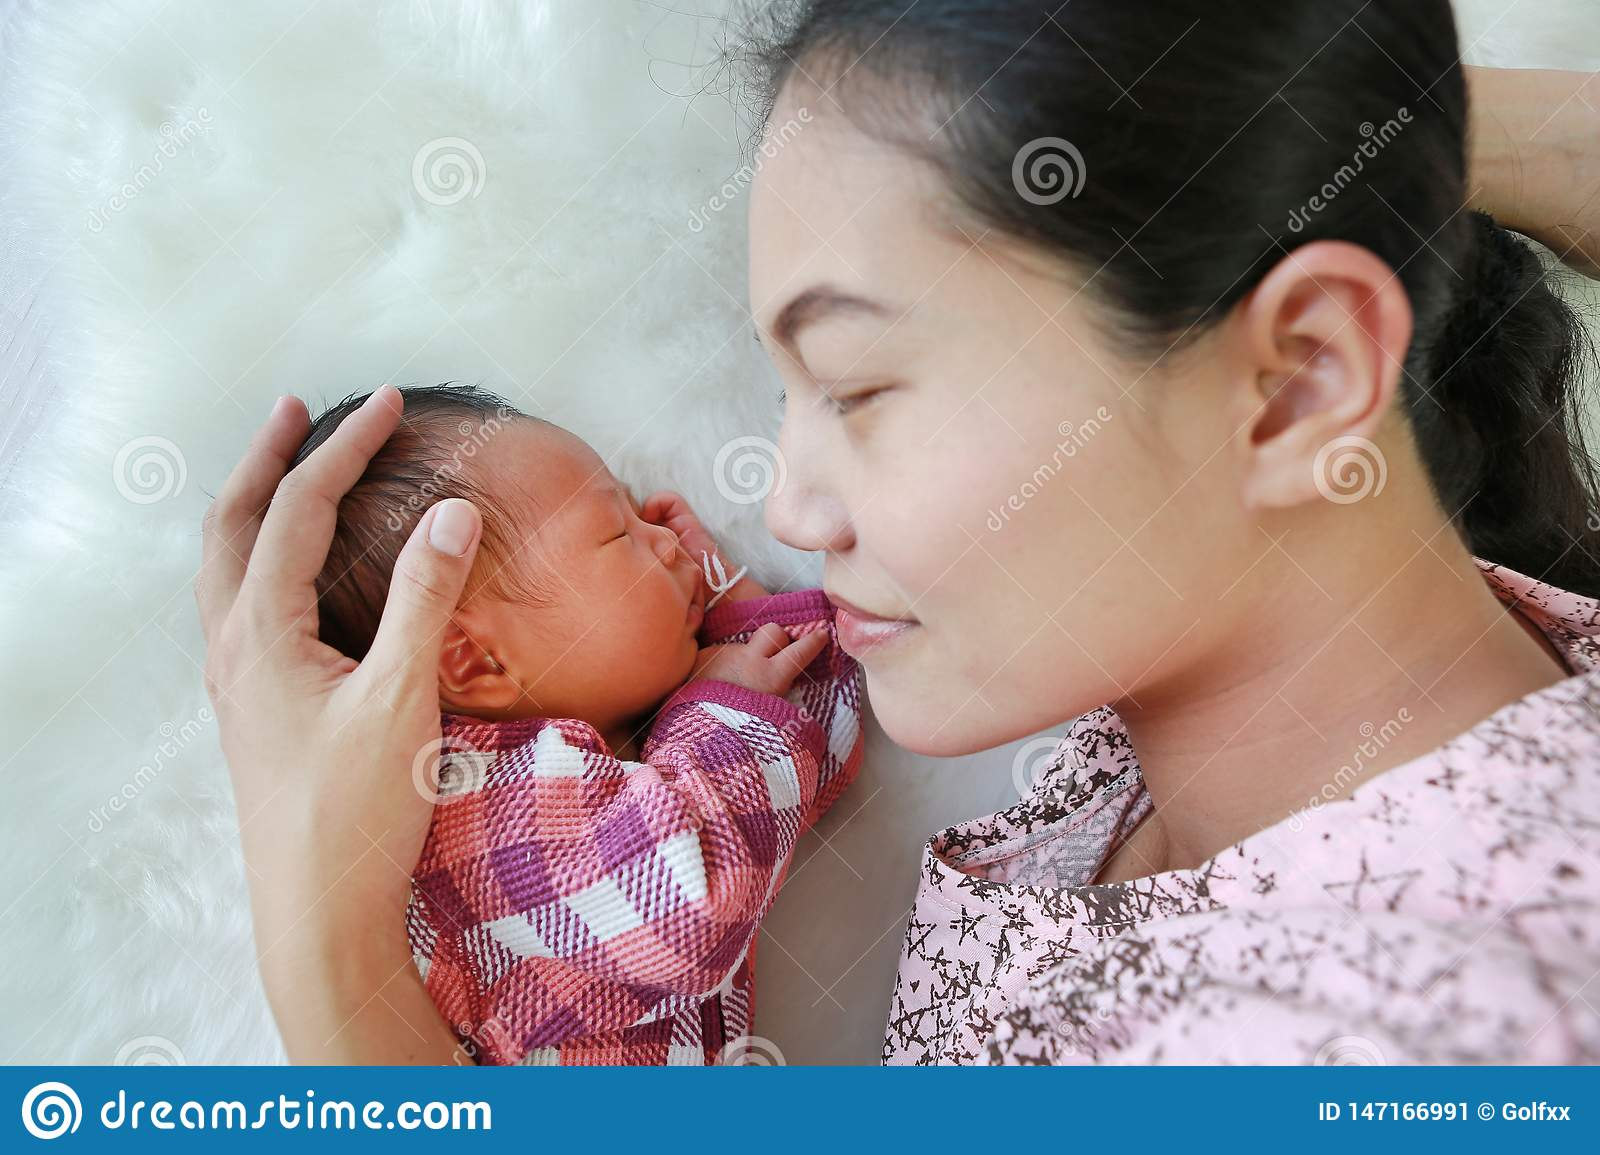 Asian mother lying with her son on white fur background. Close-up of baby and mom